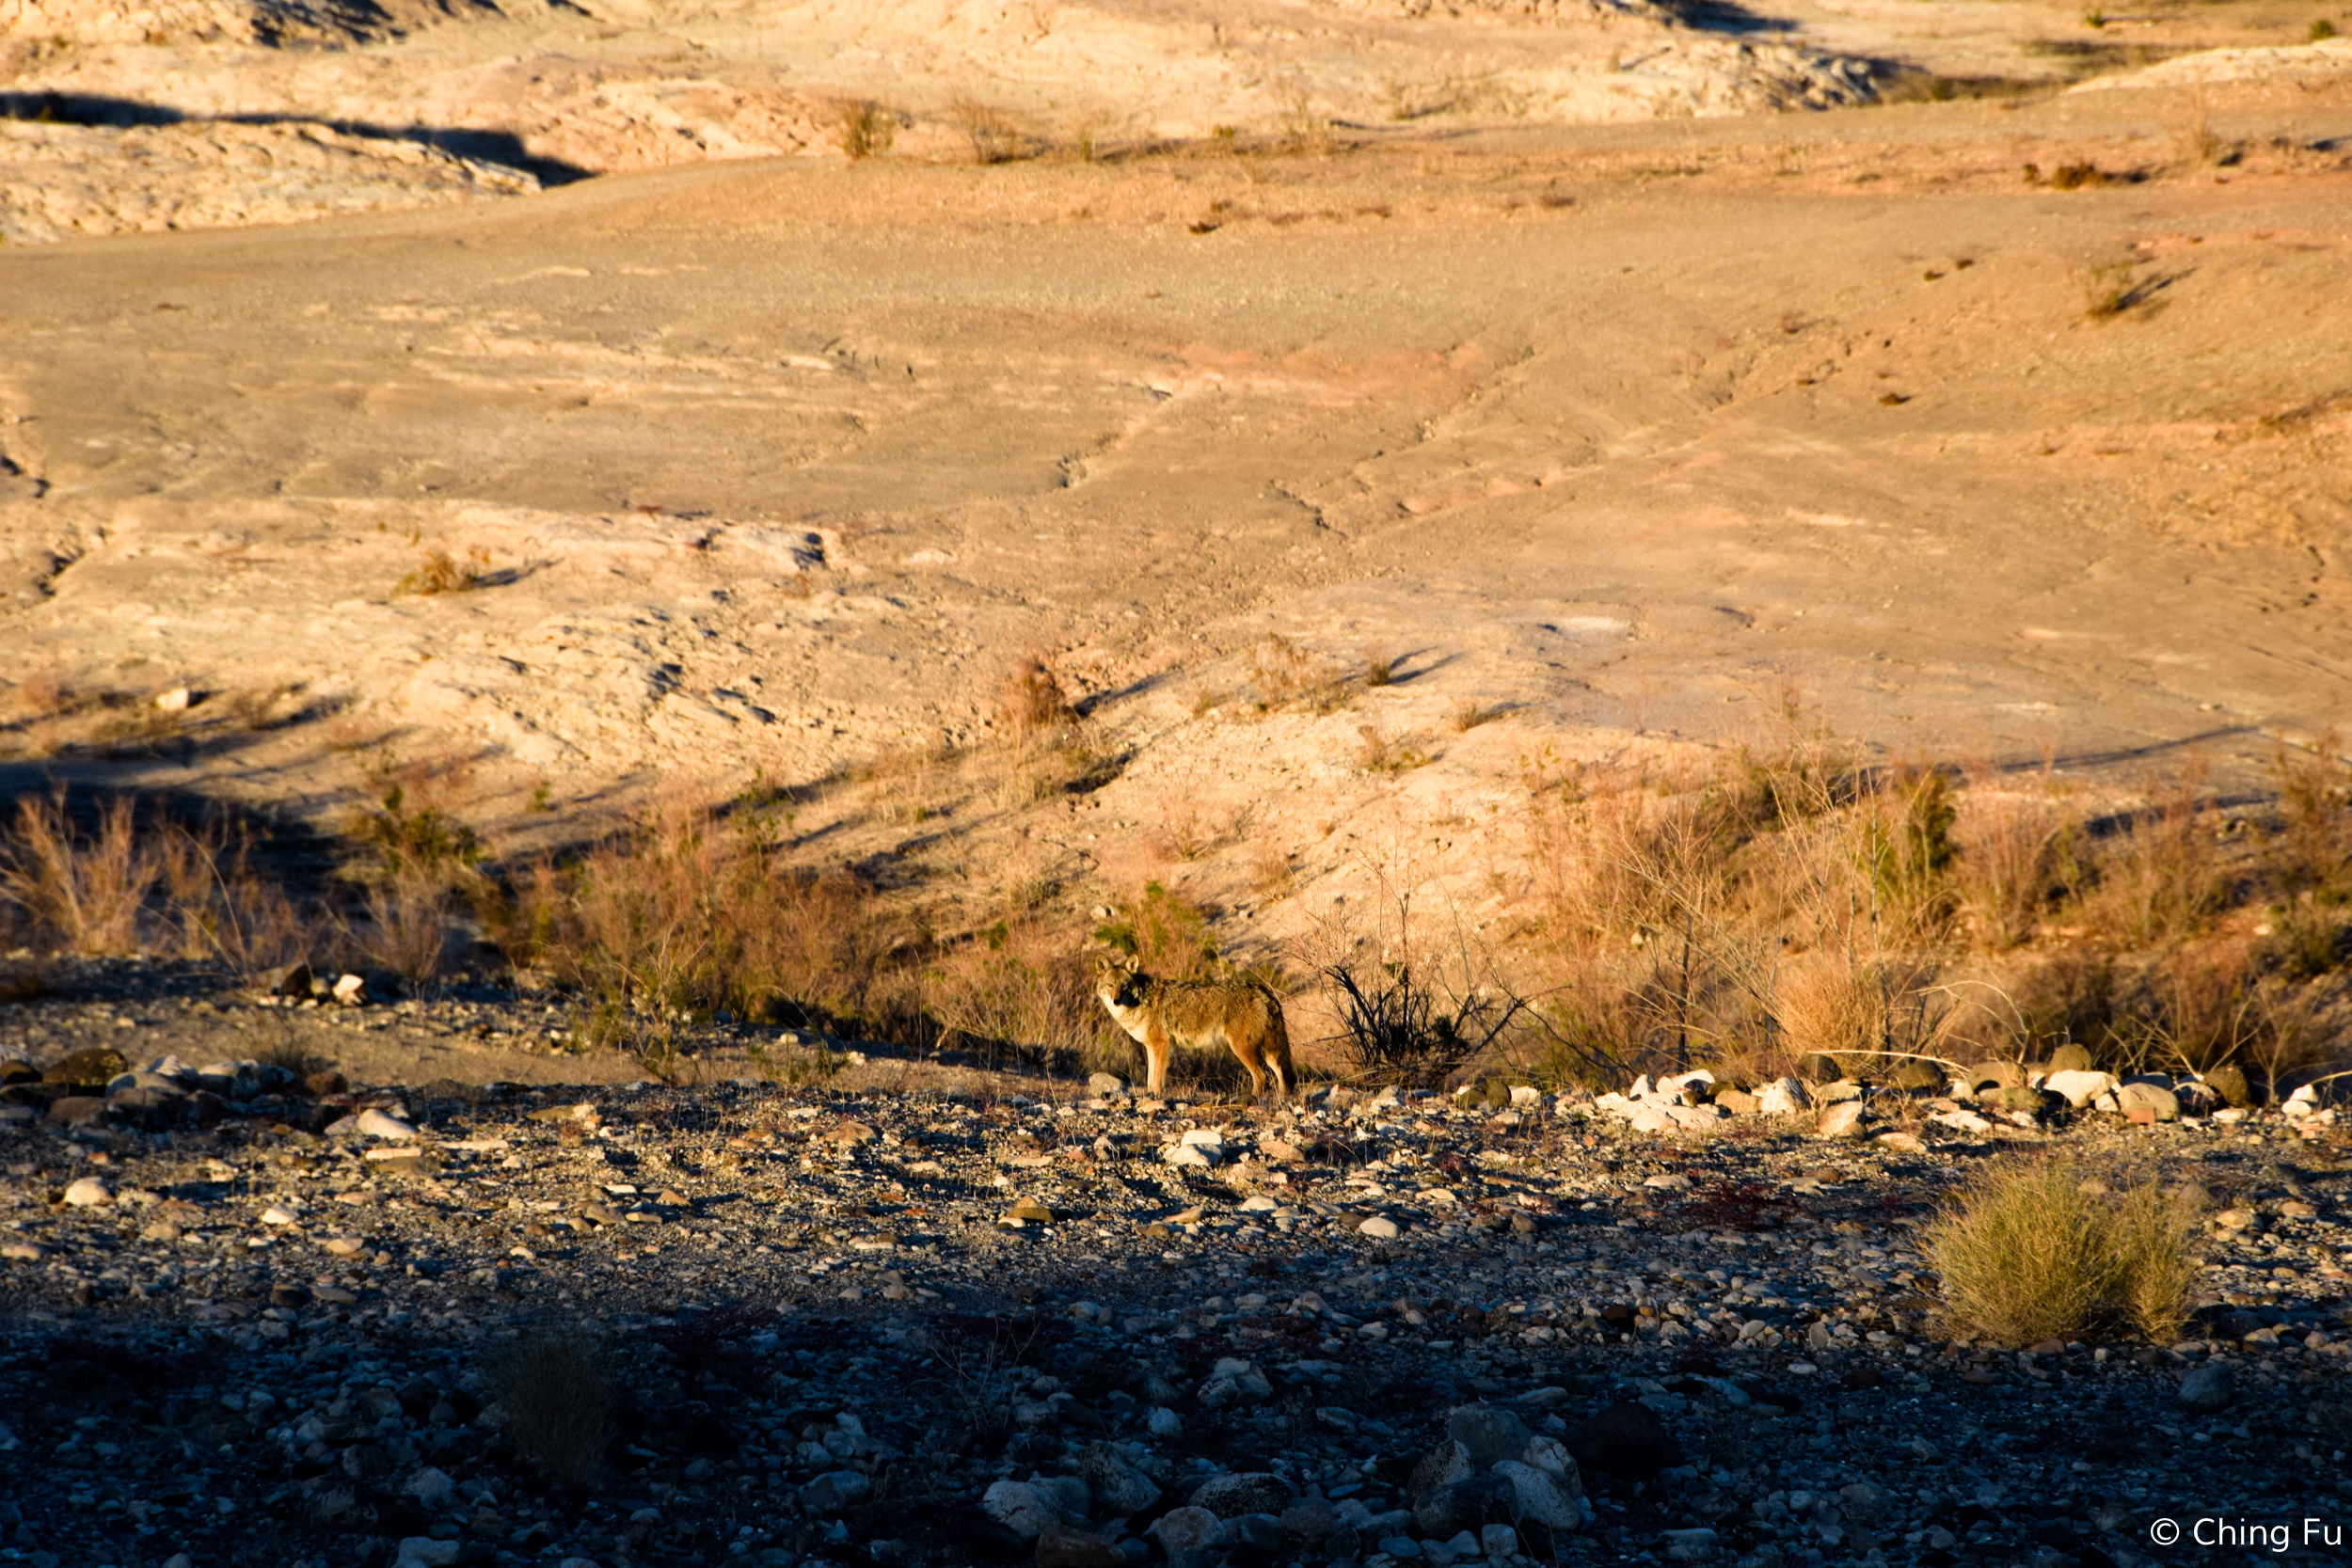 Two of the five coyotes that we saw wandering around Government Wash.